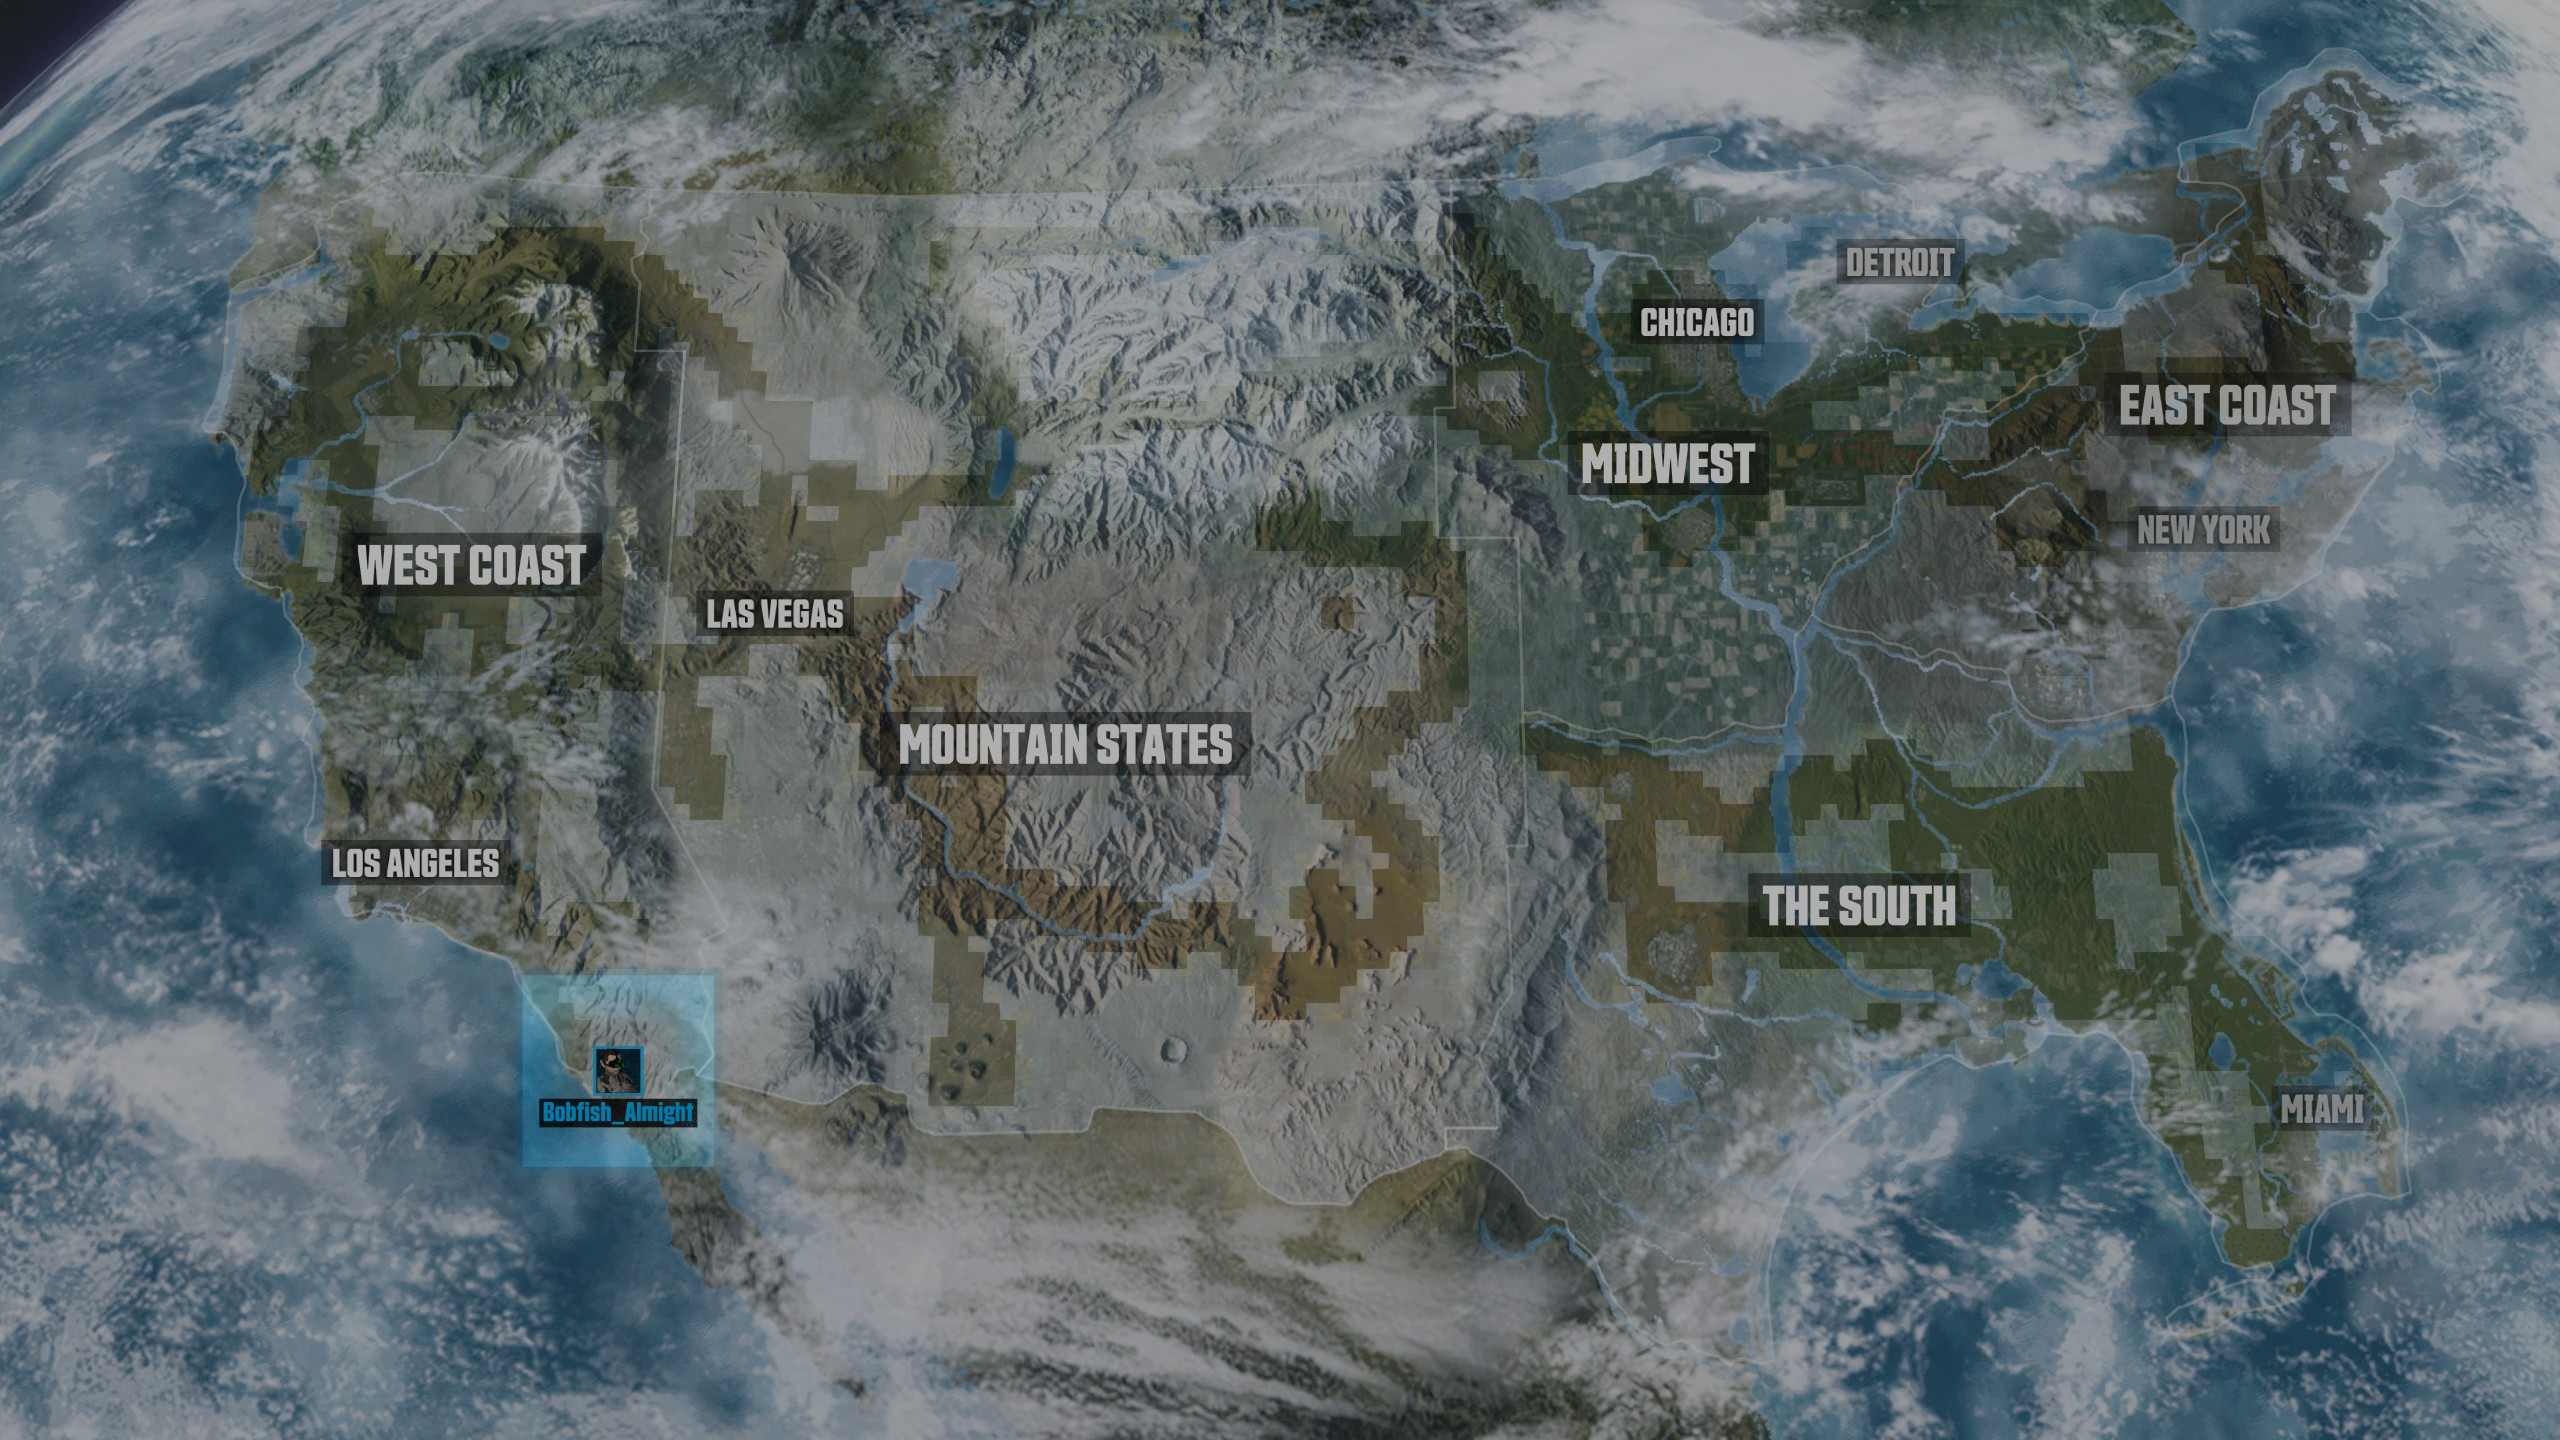 Ubisoft The Crew Map Keyword Data - Related Ubisoft The Crew Map ...